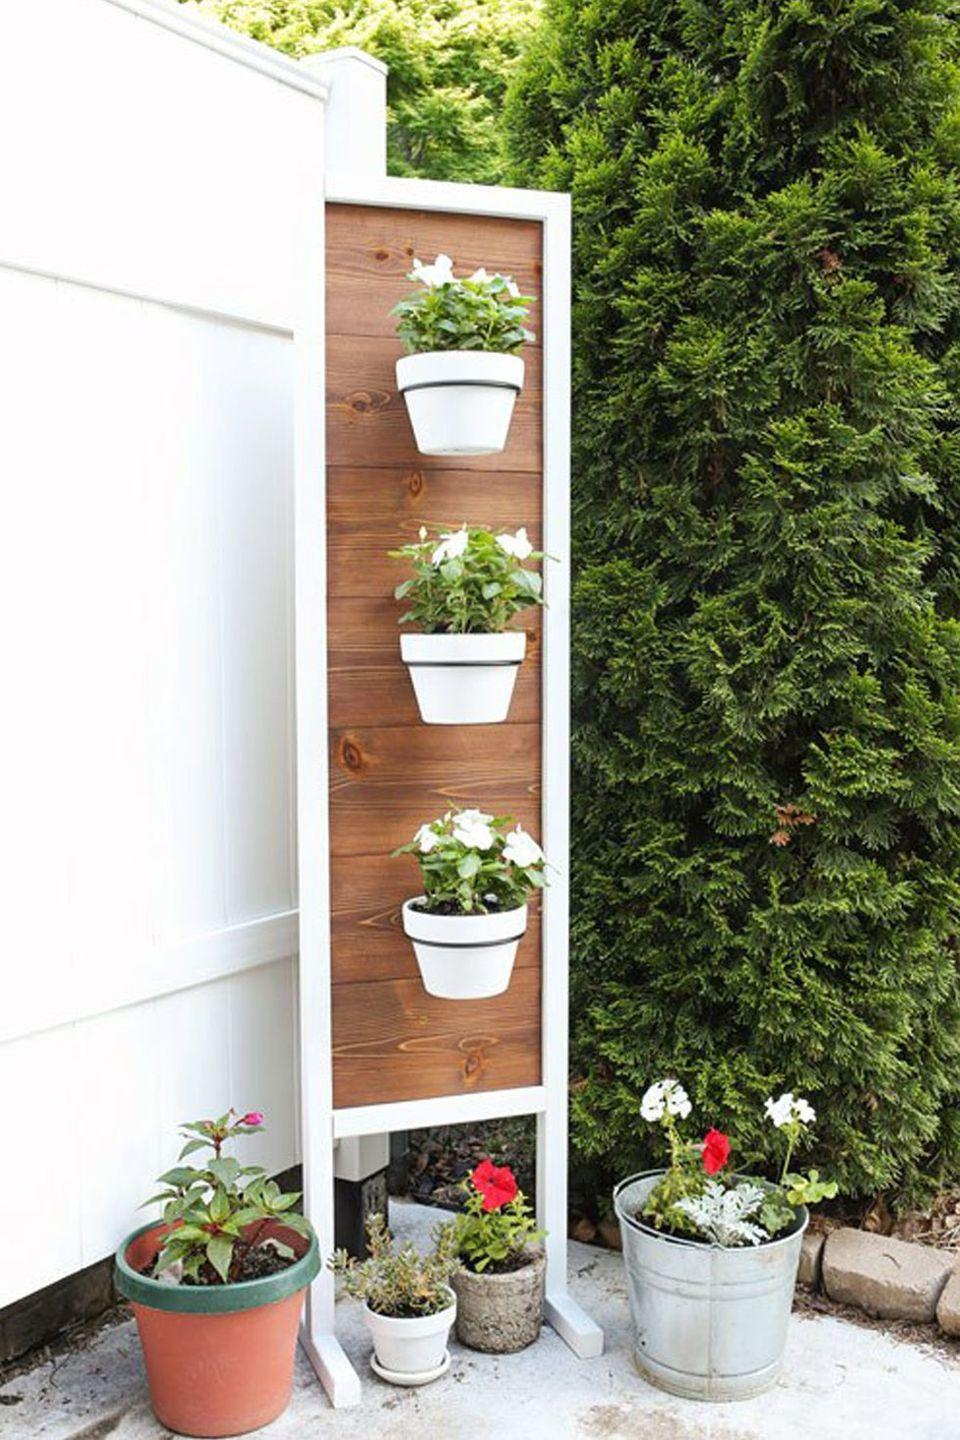 """<p>For a garden that doubles as decor, affix ceramic pots to a framed piece of cedar or pine wood. For extra impact, keep flowers in the same color theme, and sprinkle a few extras throughout the rest of your outdoor space. </p><p><em><a href=""""https://angelamariemade.com/2017/06/diy-vertical-planter-stand/"""" rel=""""nofollow noopener"""" target=""""_blank"""" data-ylk=""""slk:Get the tutorial at Angela Marie Made »"""" class=""""link rapid-noclick-resp"""">Get the tutorial at Angela Marie Made »</a></em></p>"""